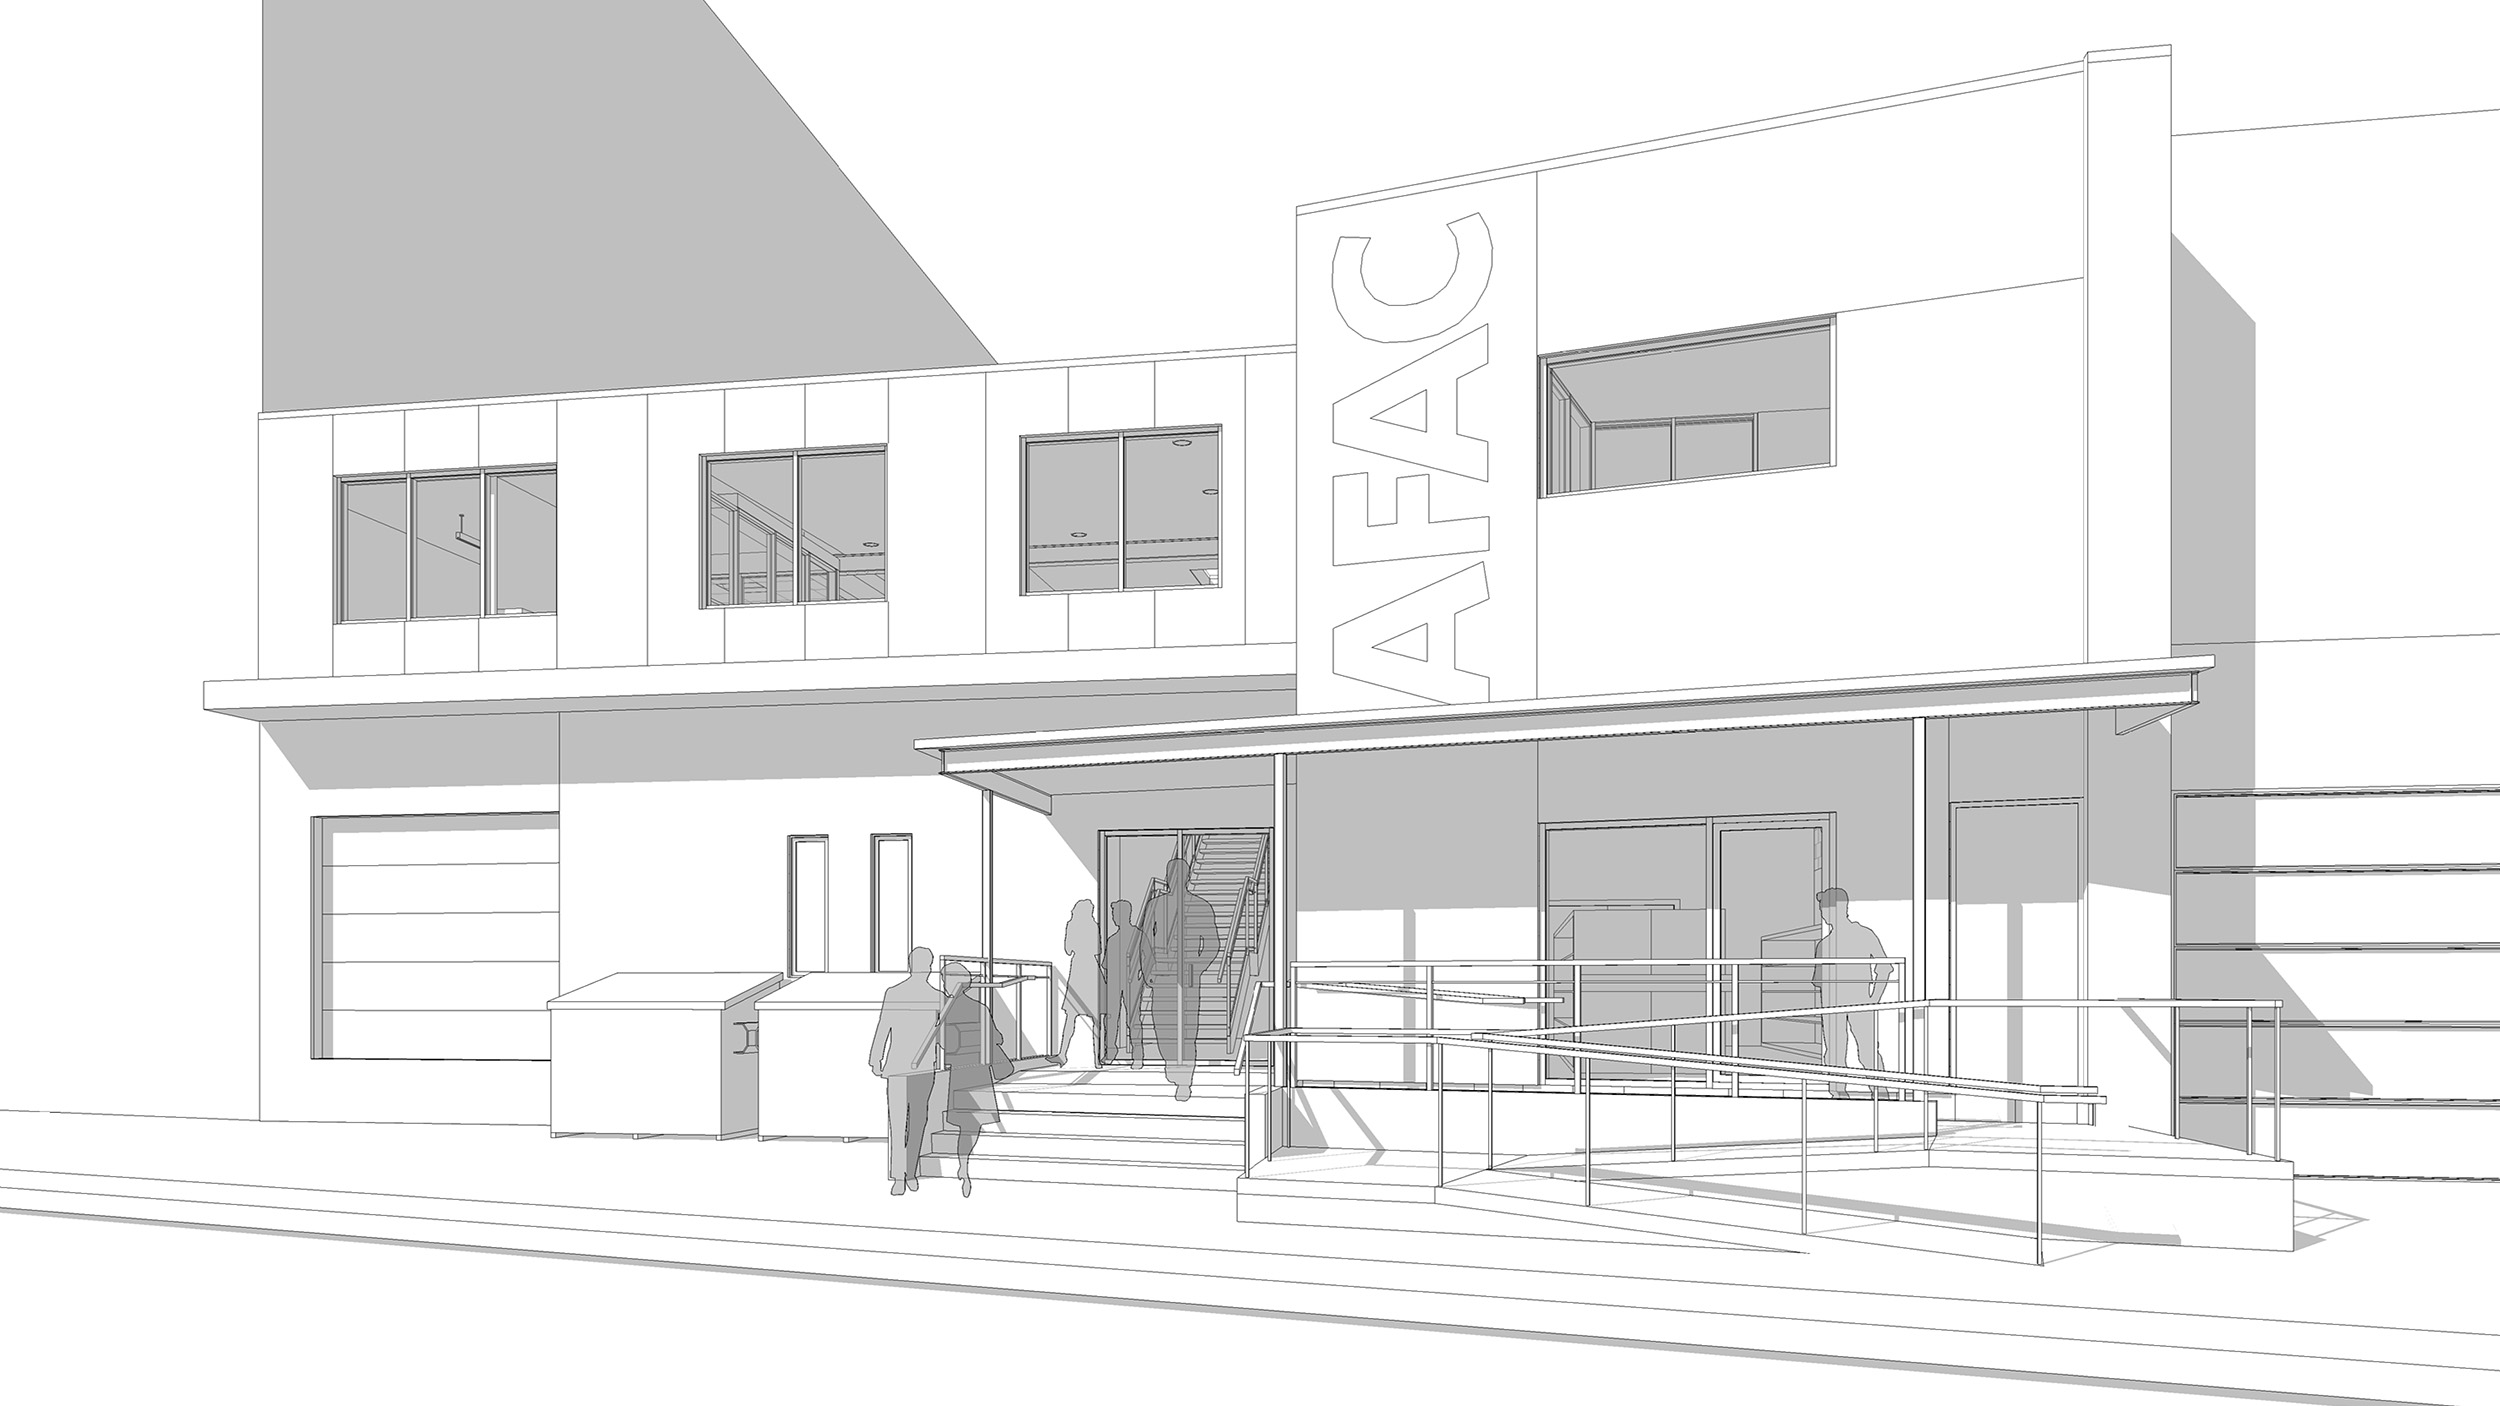 AFAC_Front Facade Perspective v3 w.jpg